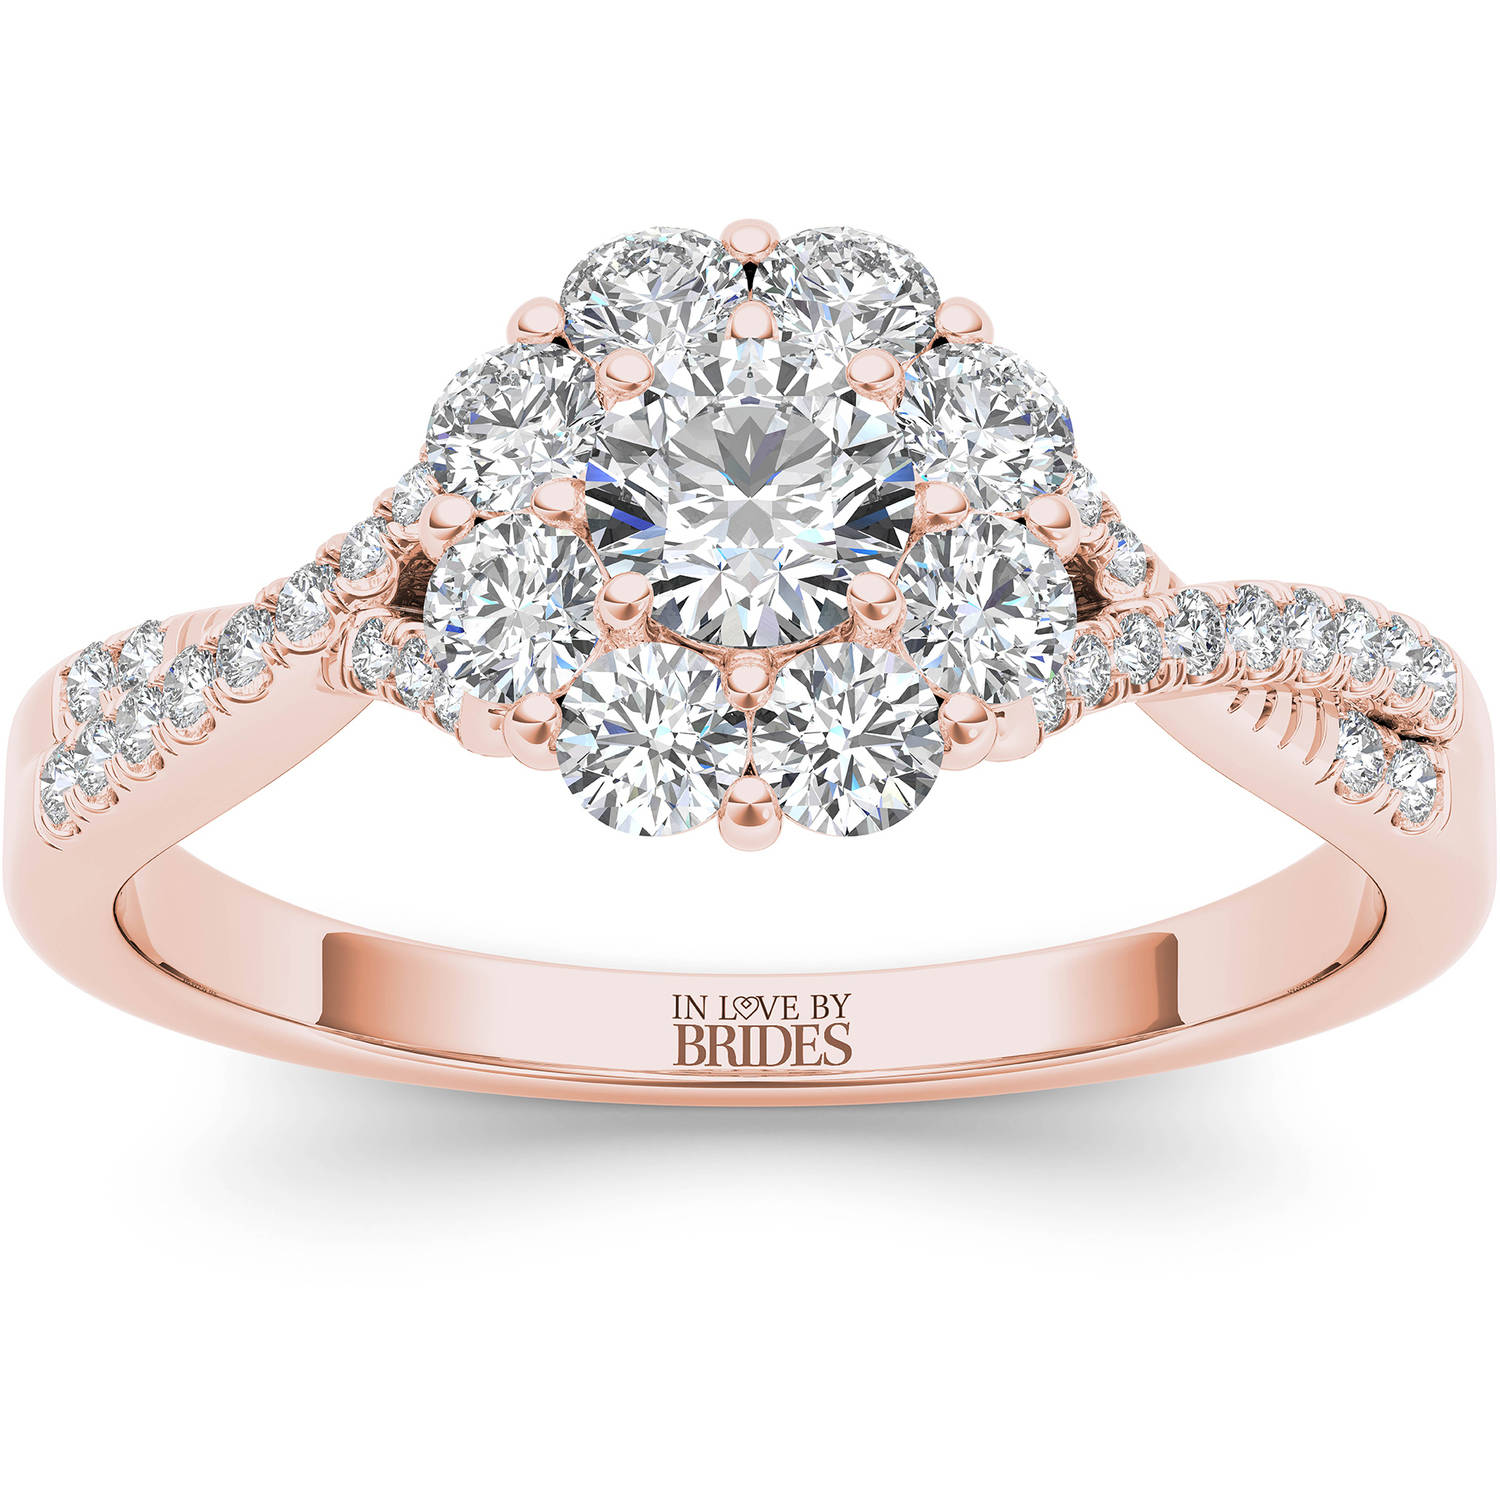 IN LOVE BY BRIDES 3/4 Carat T.W. Certified Diamond Flower Burst 14kt Pink Gold Engagement Ring